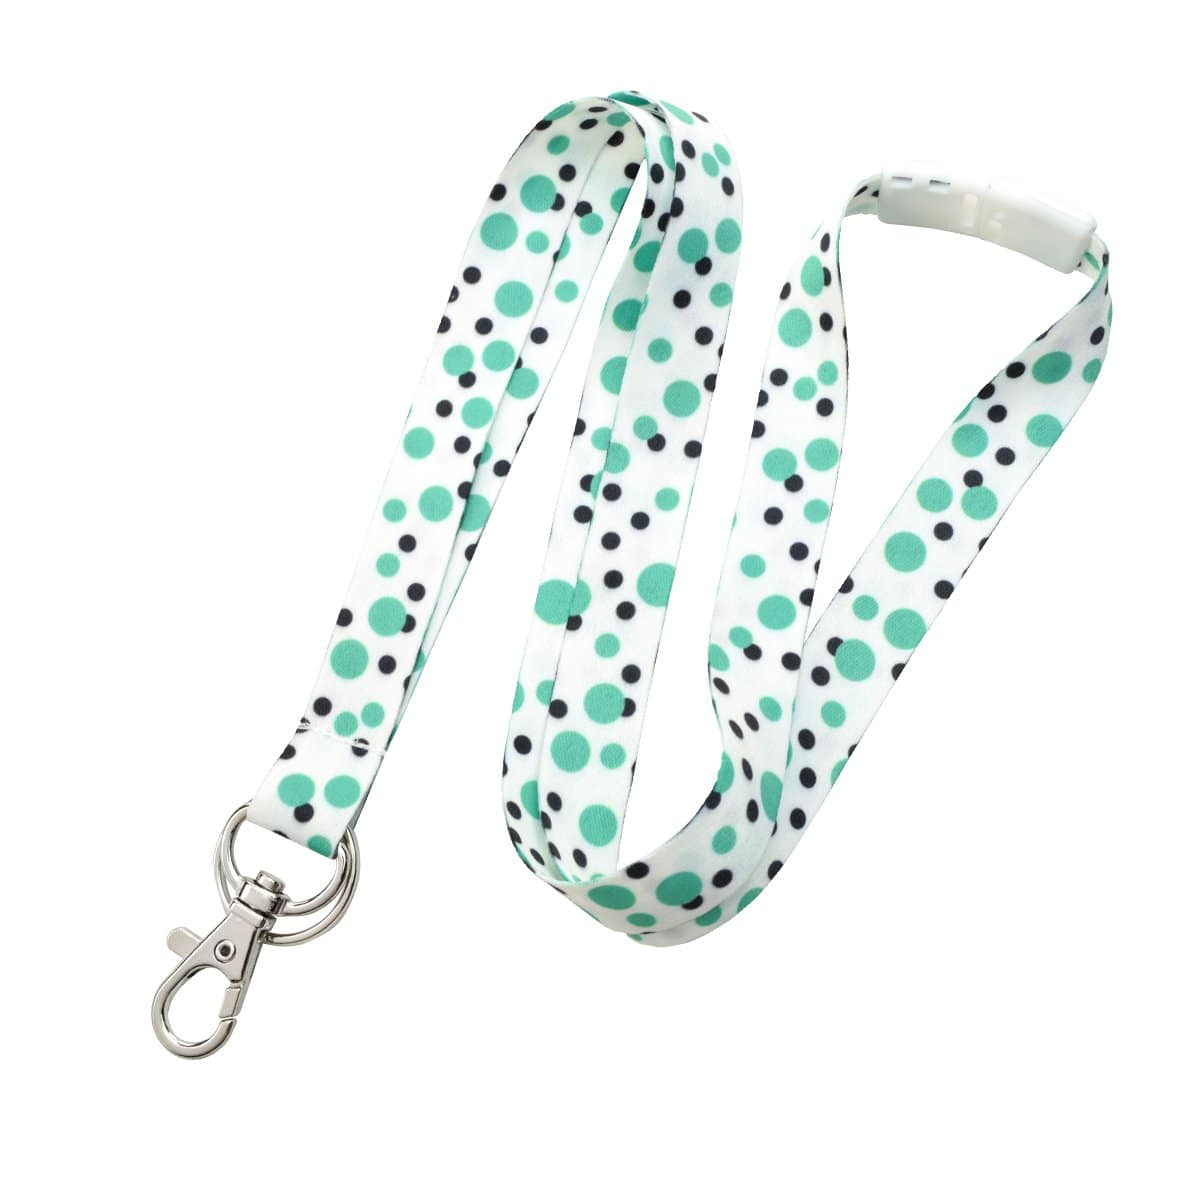 Cute Polka Dot Pattern Fashion Lanyard With Lobster Hook And Key Ring(P/N 2138-728X)